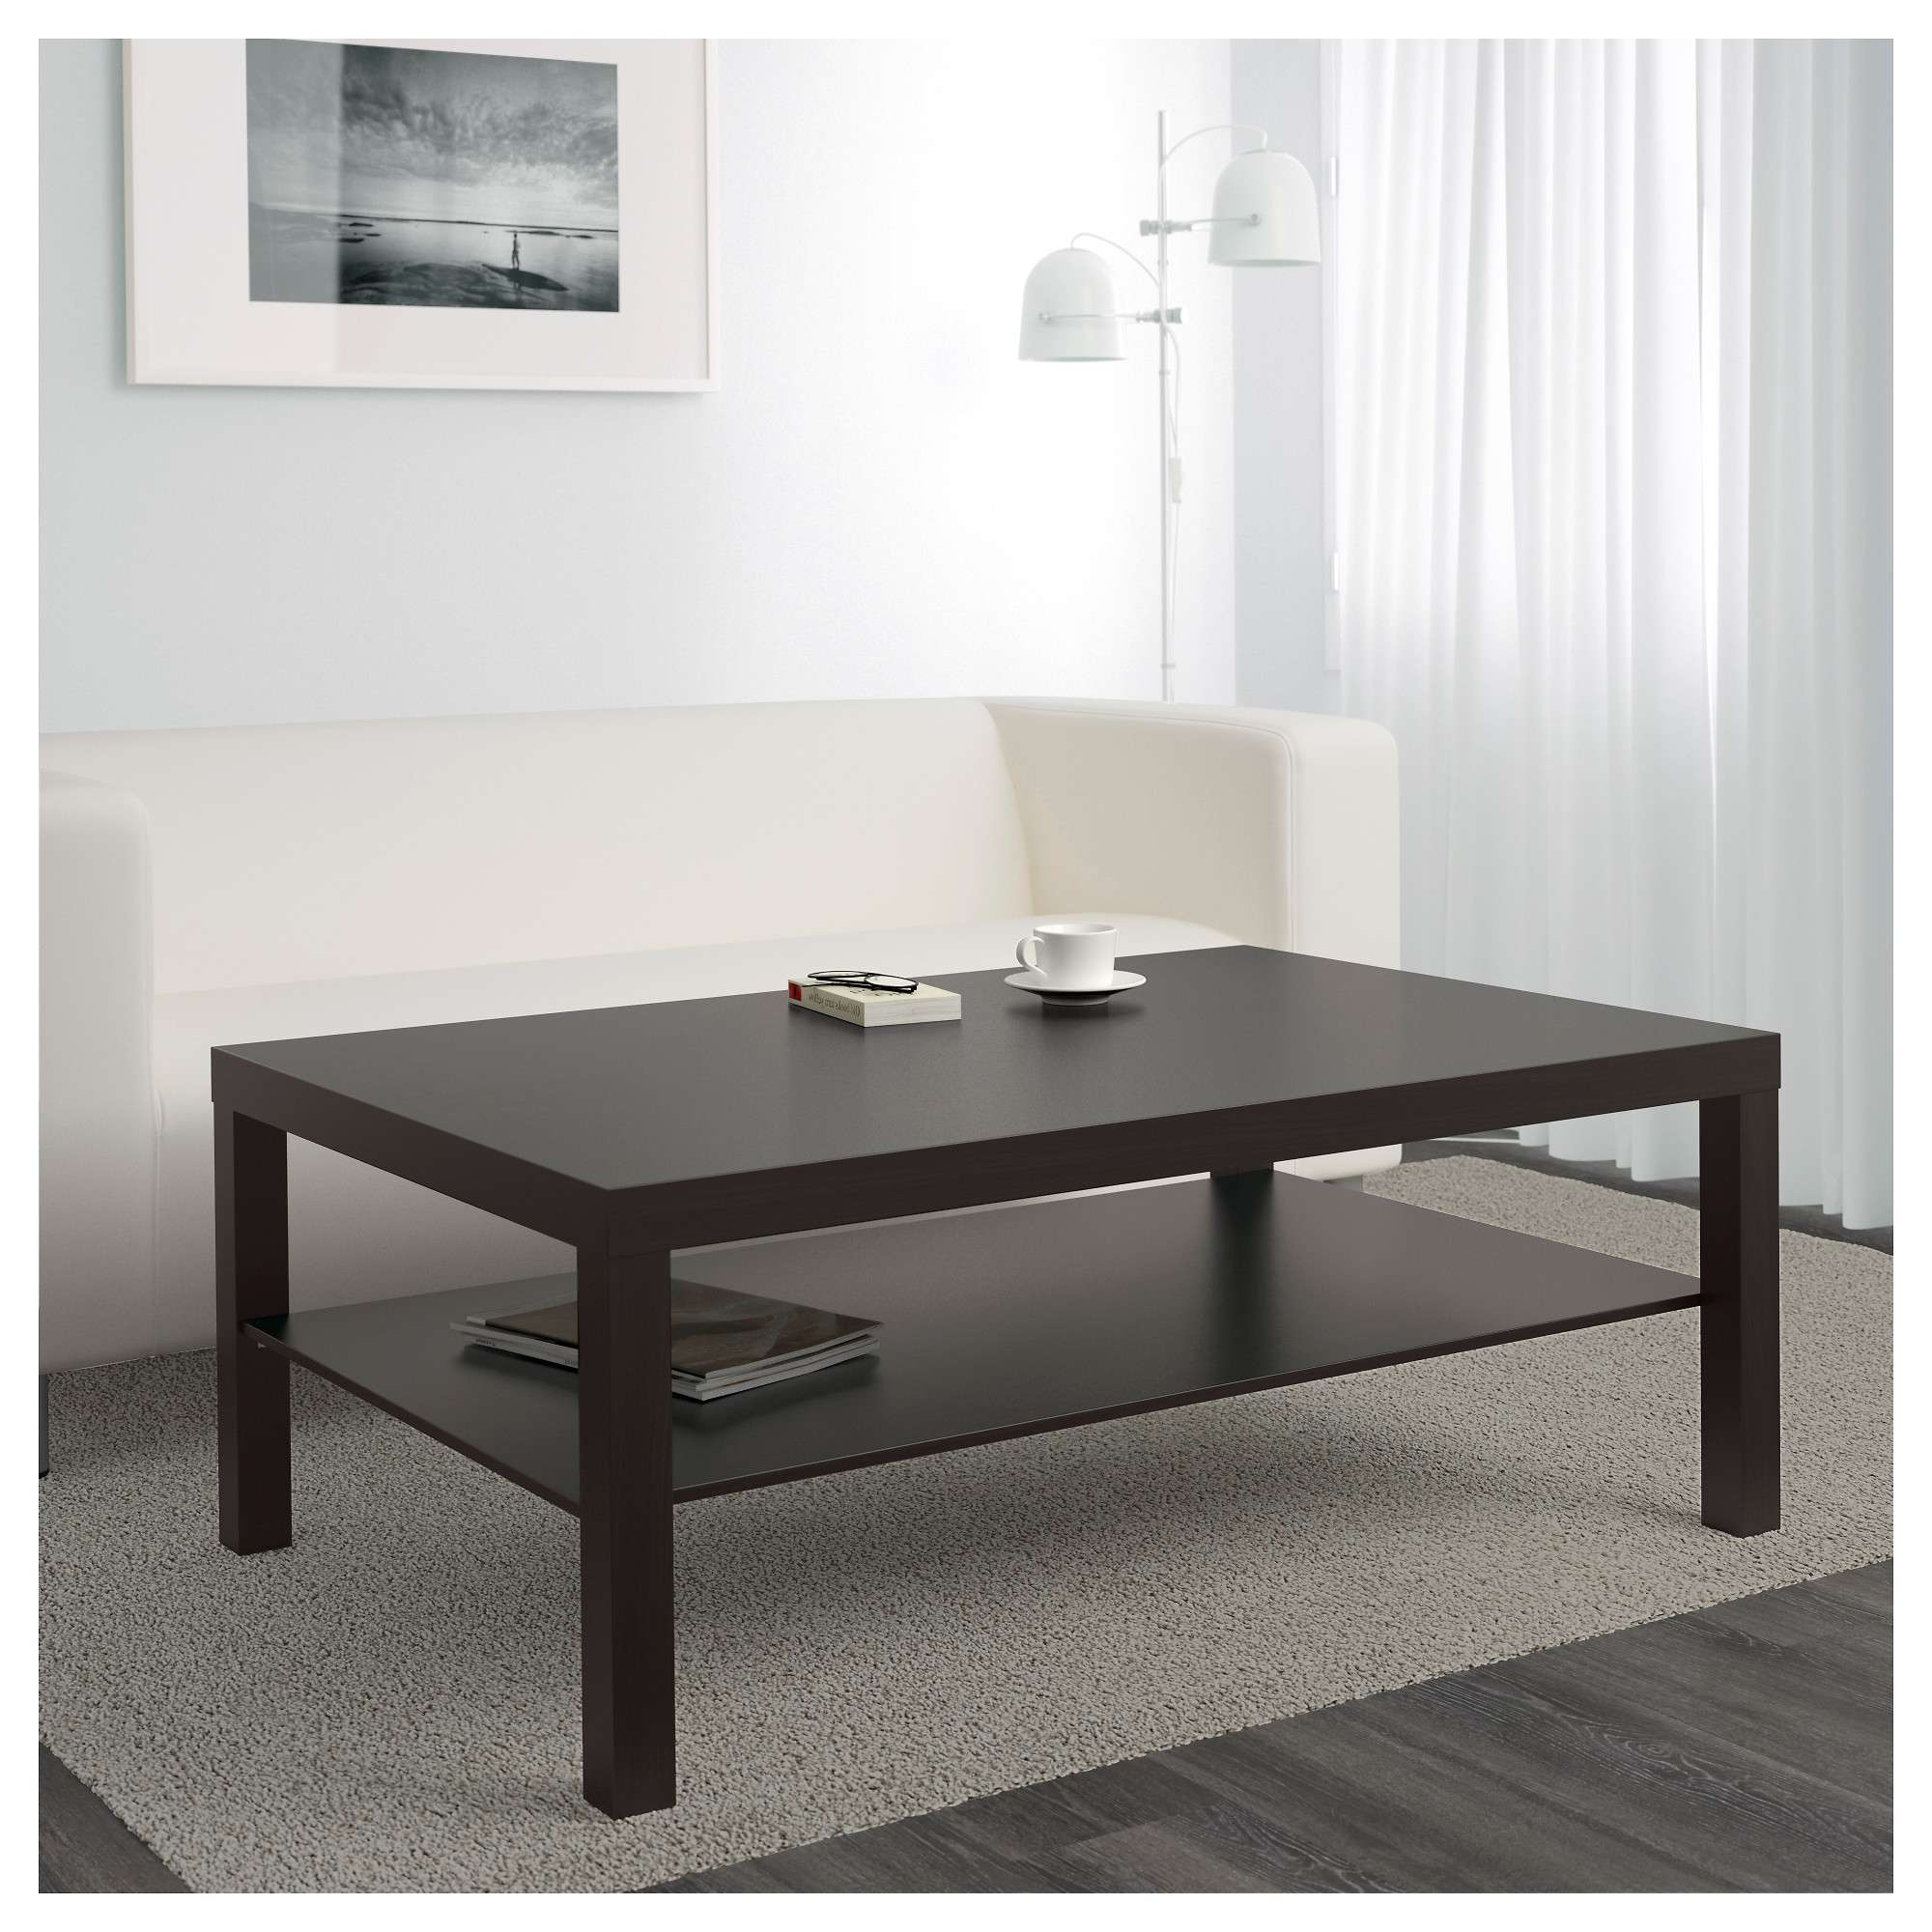 Lack Coffee Table U2013 Black Brown U2013 Ikea For Best And Newest Dark Brown  Coffee Tables